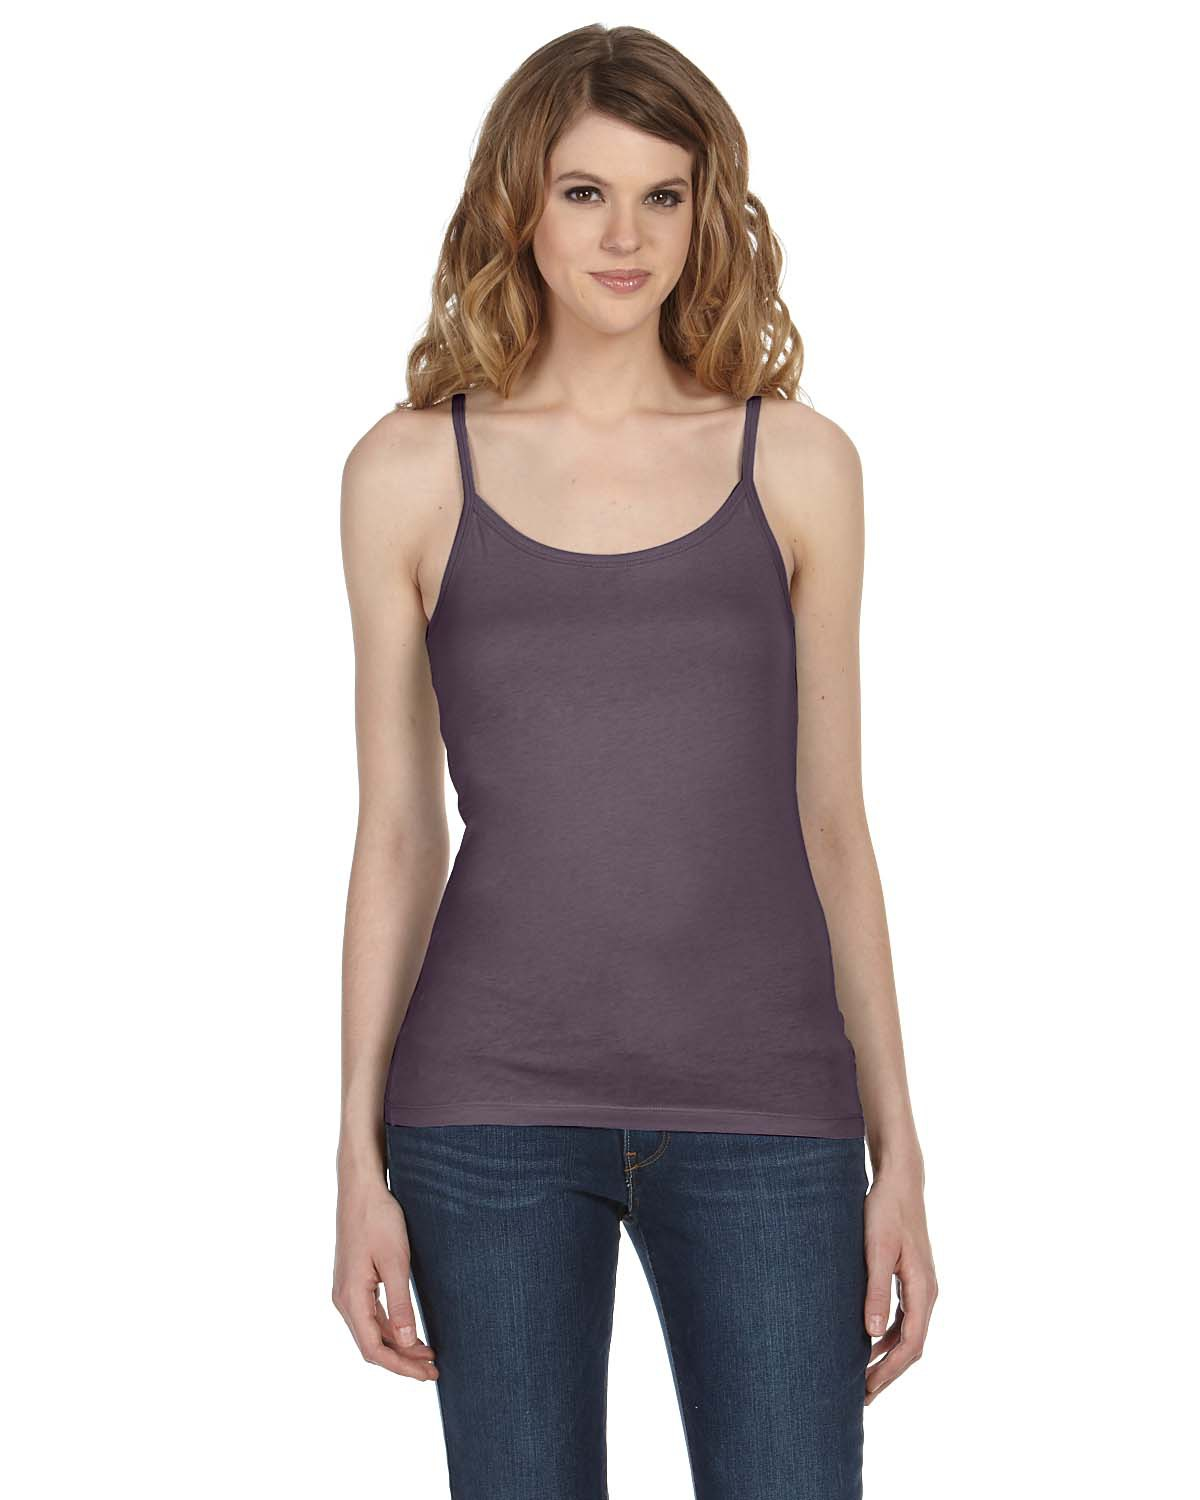 bella 8111 Ladies' Louise Sheer Jersey Longer Length Scoop Neck Tank Top